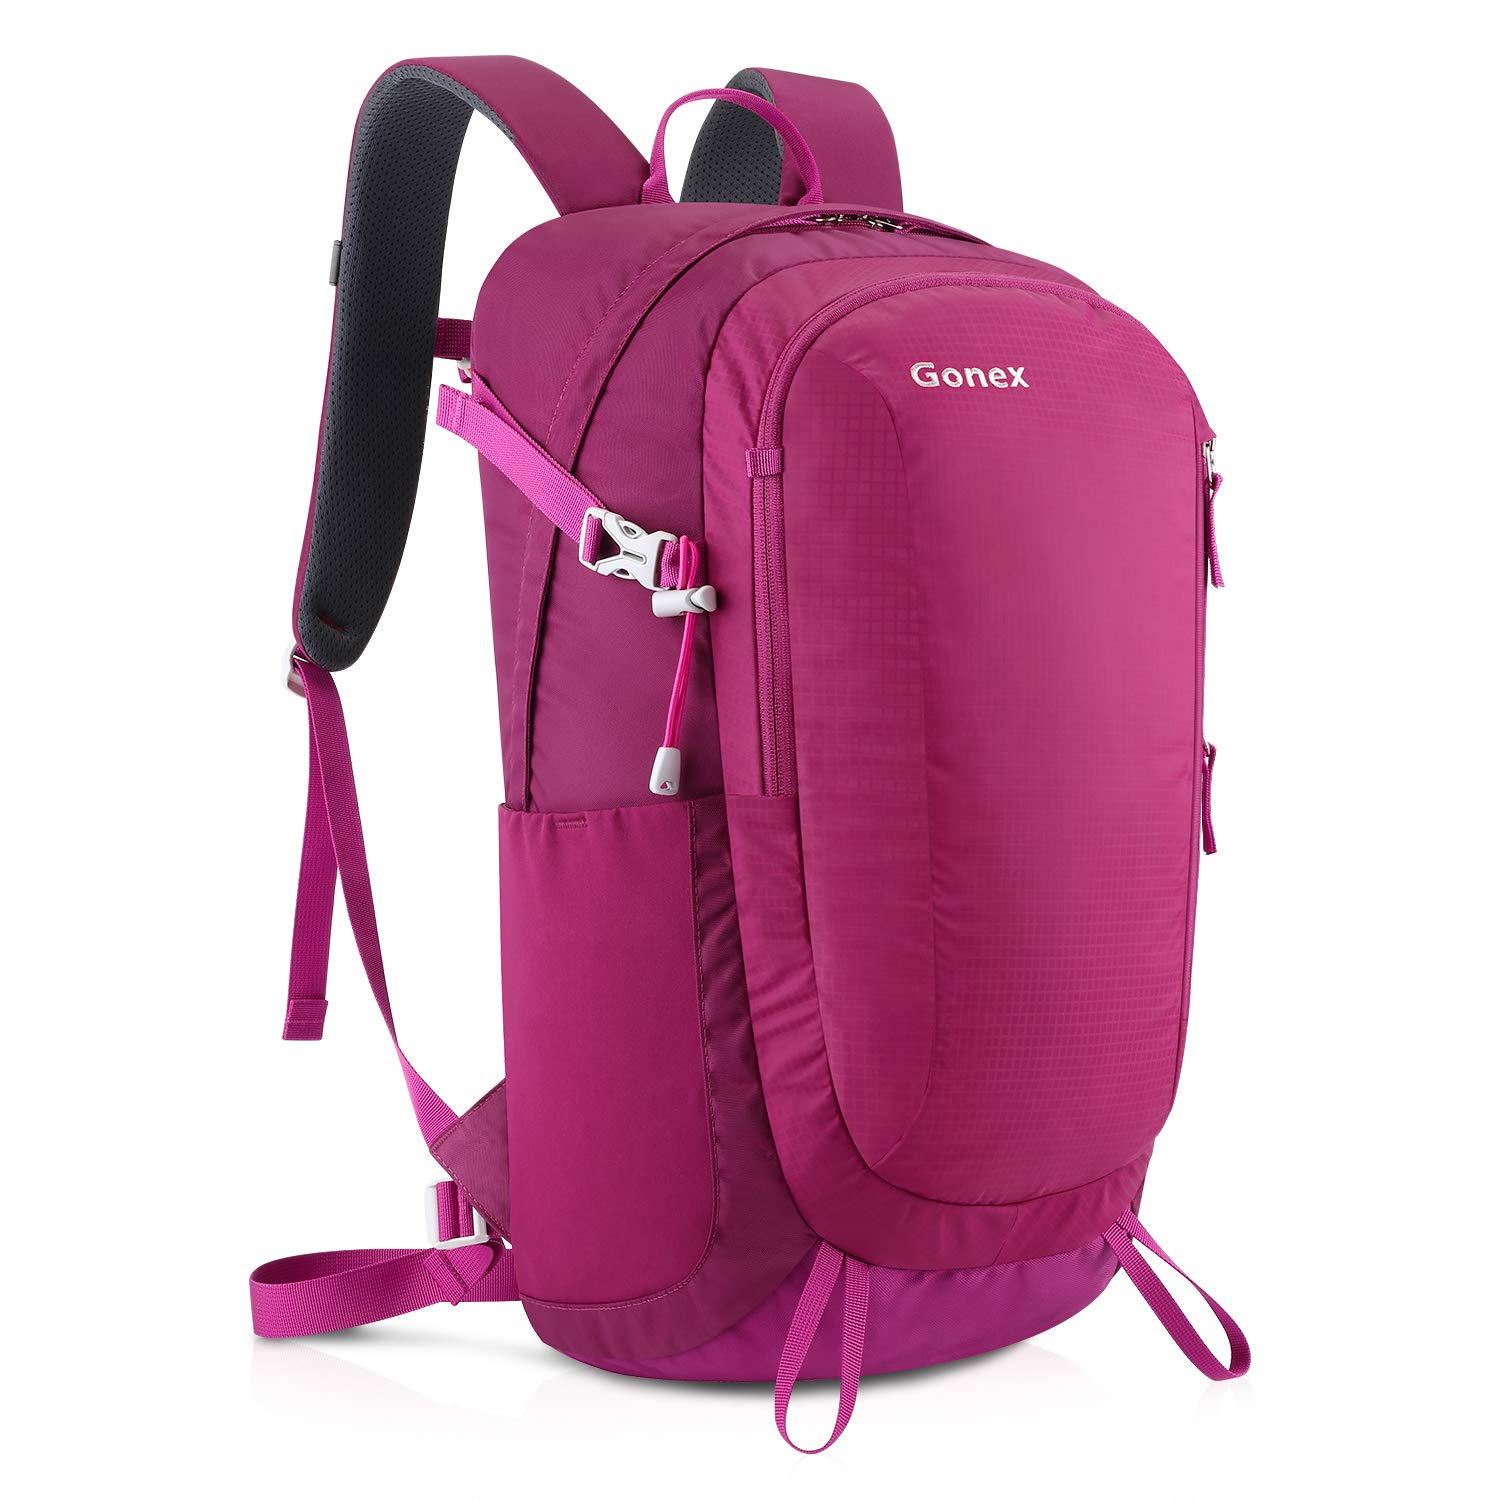 Gonex 30L Hiking Backpack Outdoor Travel Backpack Lightweight Water-Repellent Day Pack Rose red